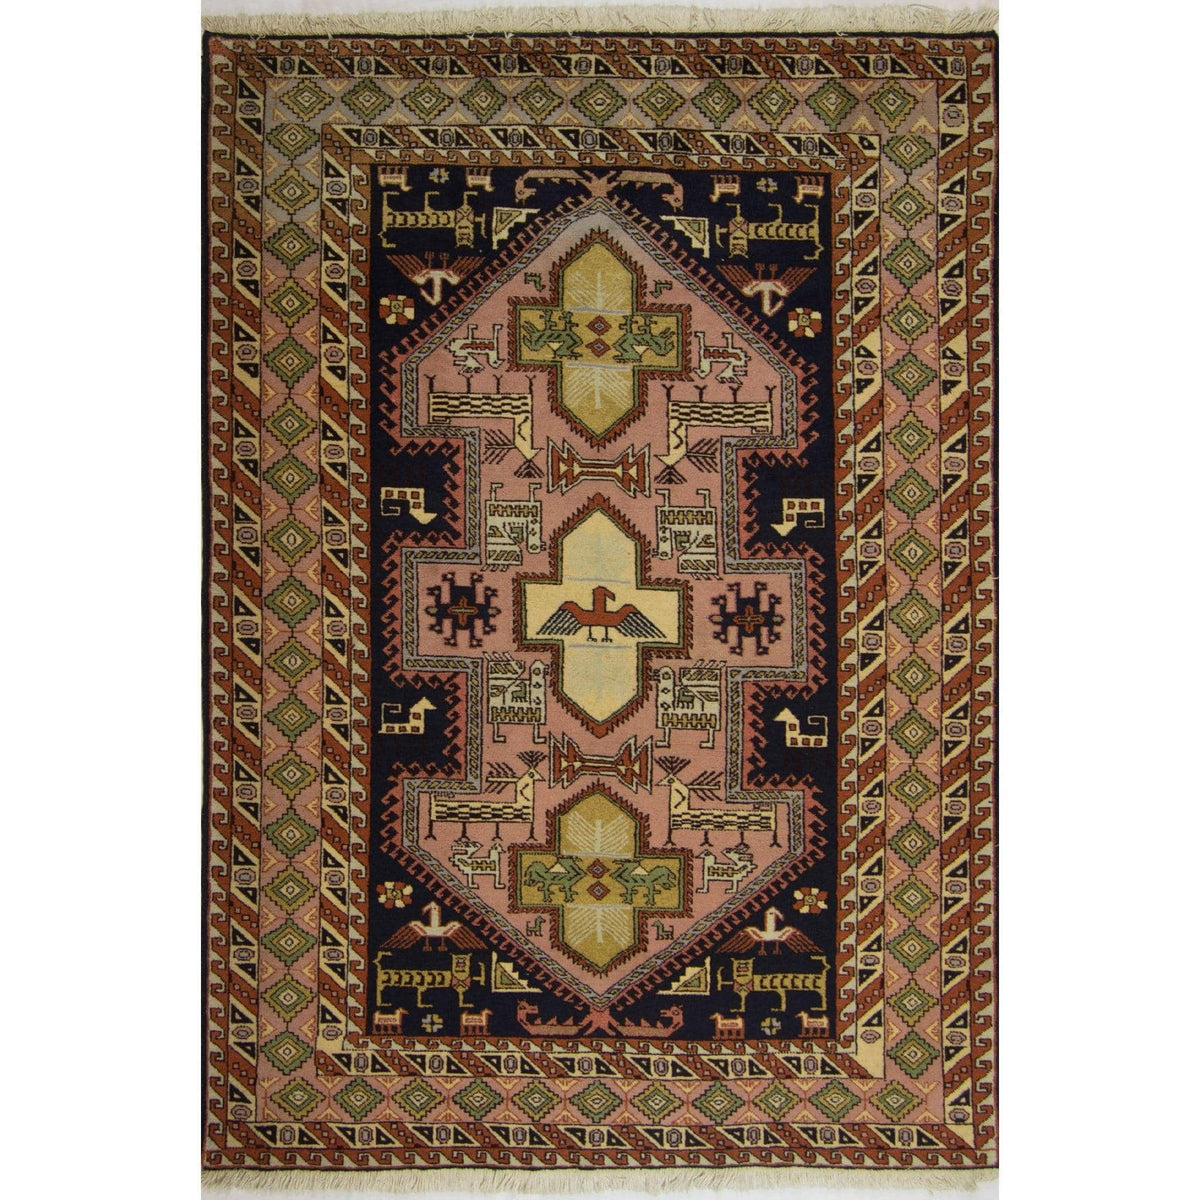 Fine Hand-knotted Wool Persian Ardabil Rug 135cm x 190cm Persian-Rug | House-of-Haghi | NewMarket | Auckland | NZ | Handmade Persian Rugs | Hand Knotted Persian Rugs